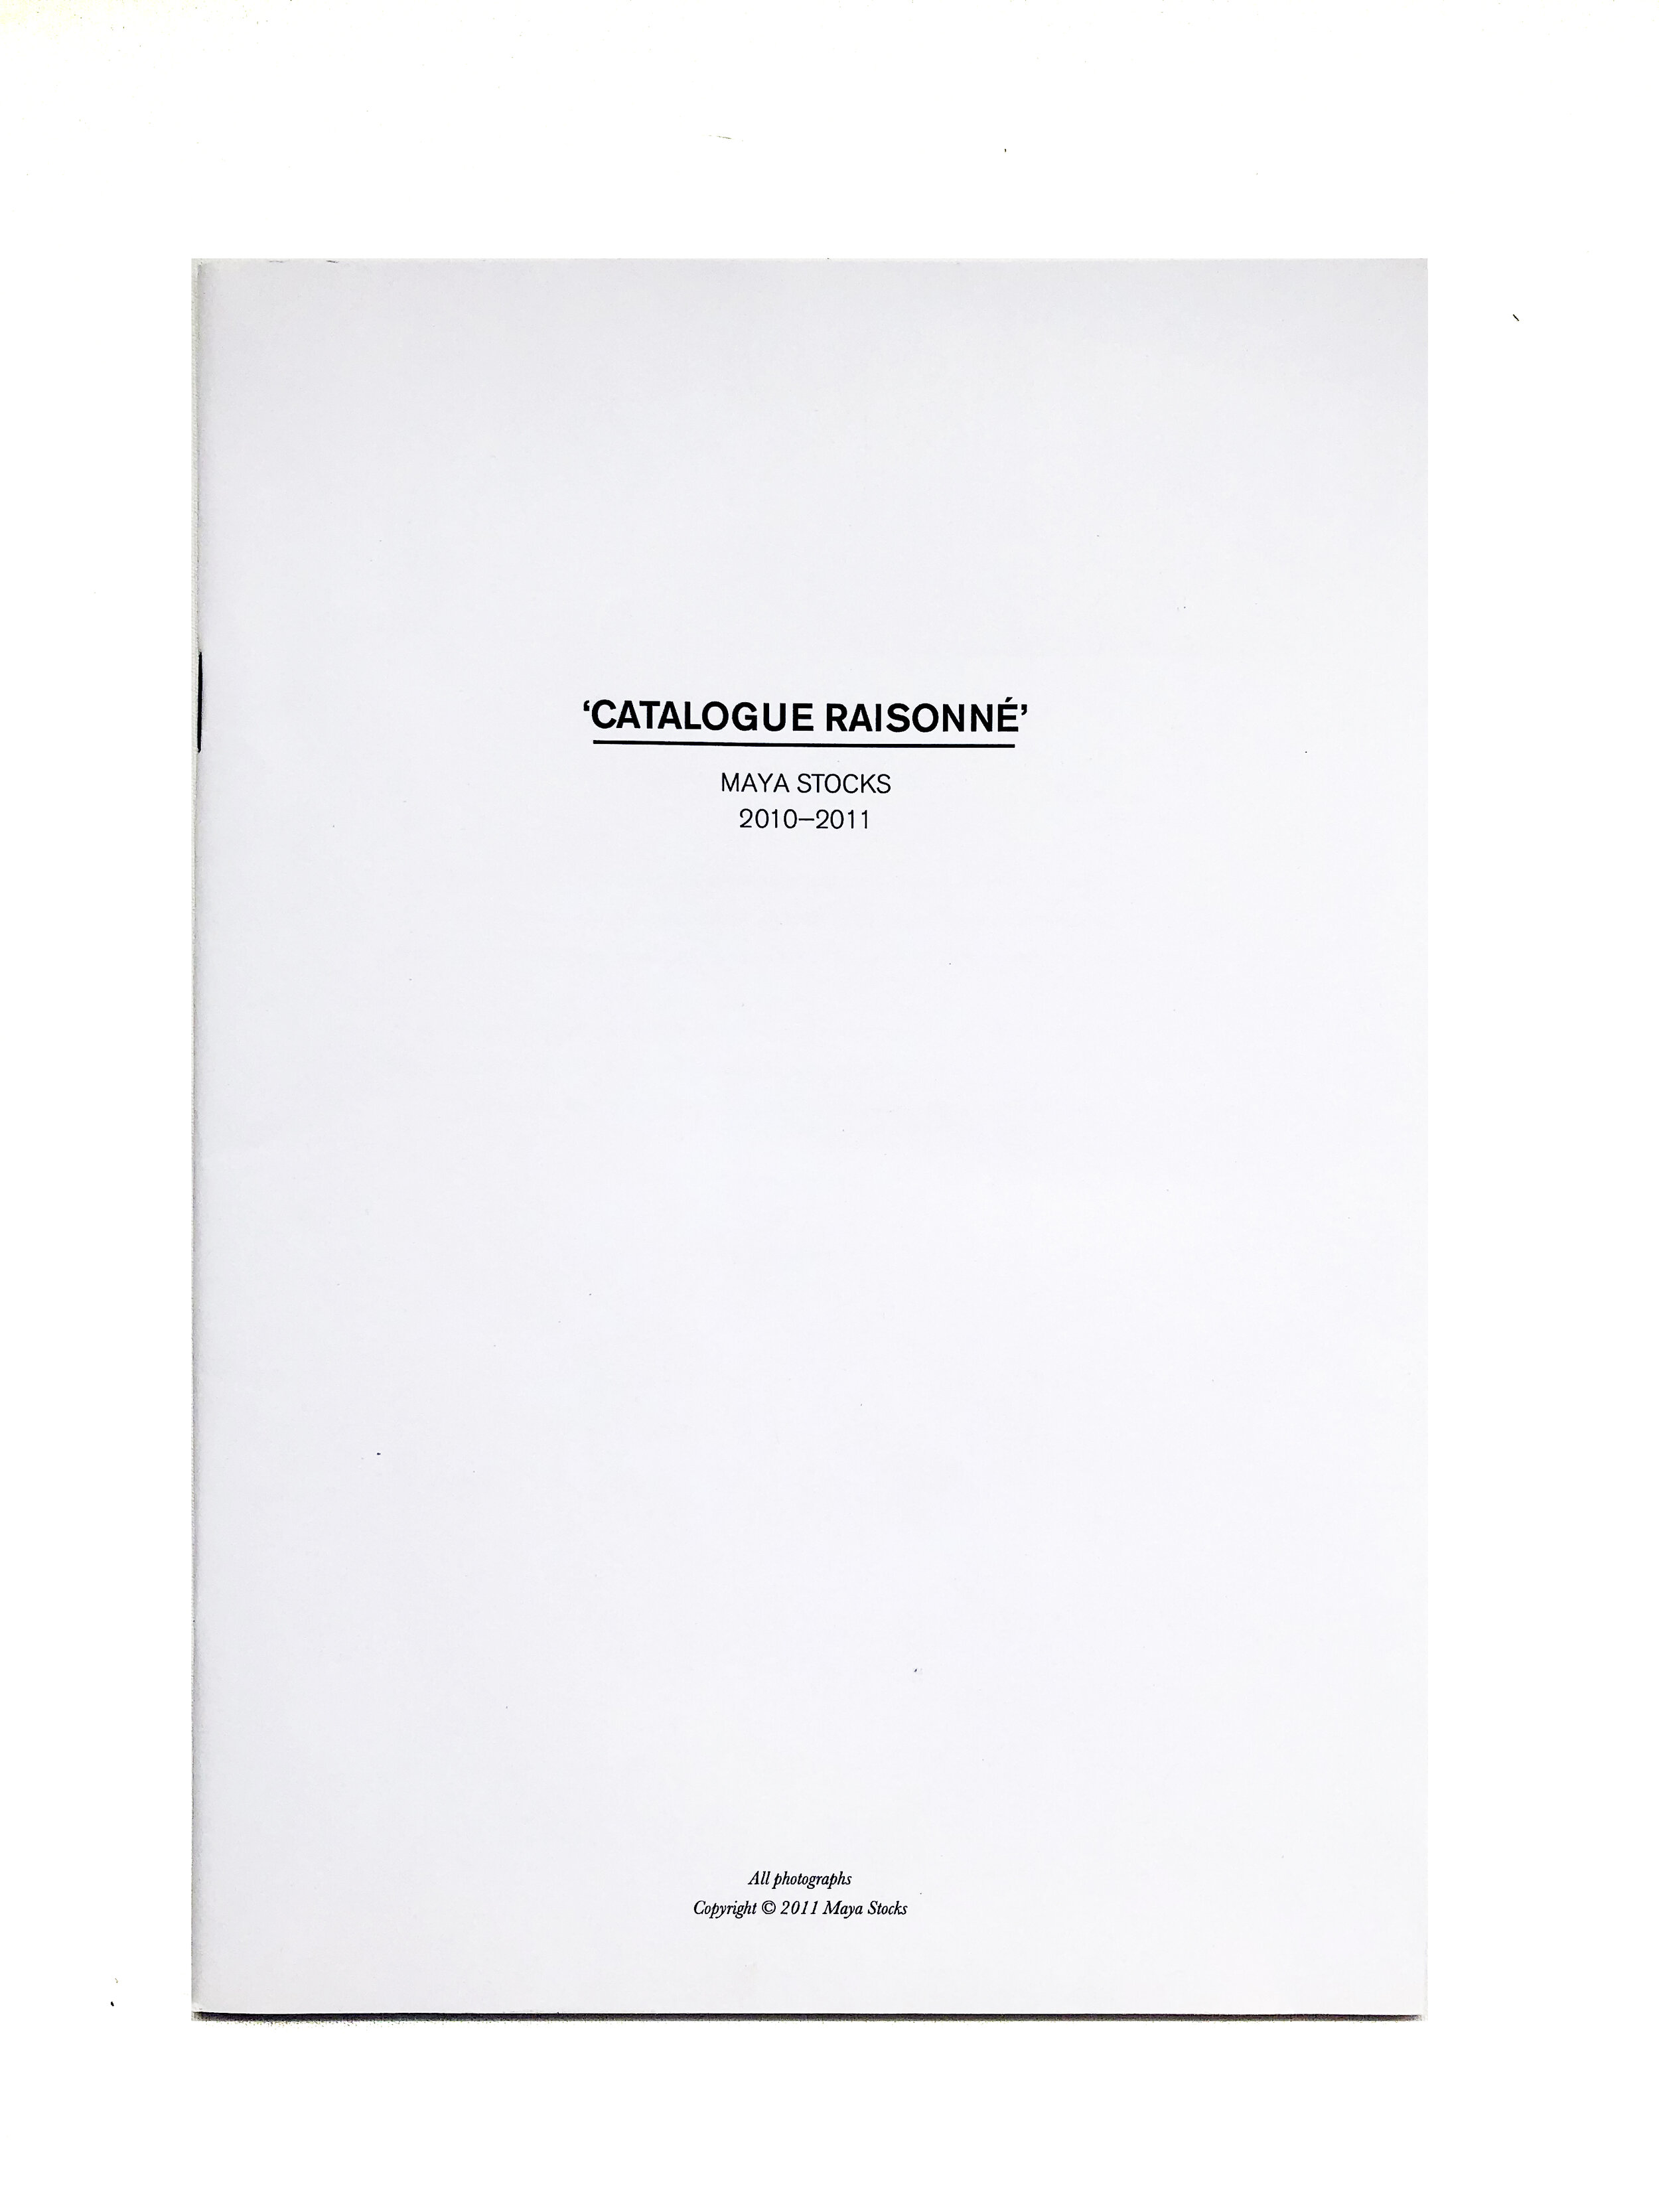 'Catalogue Raisonné', 2010